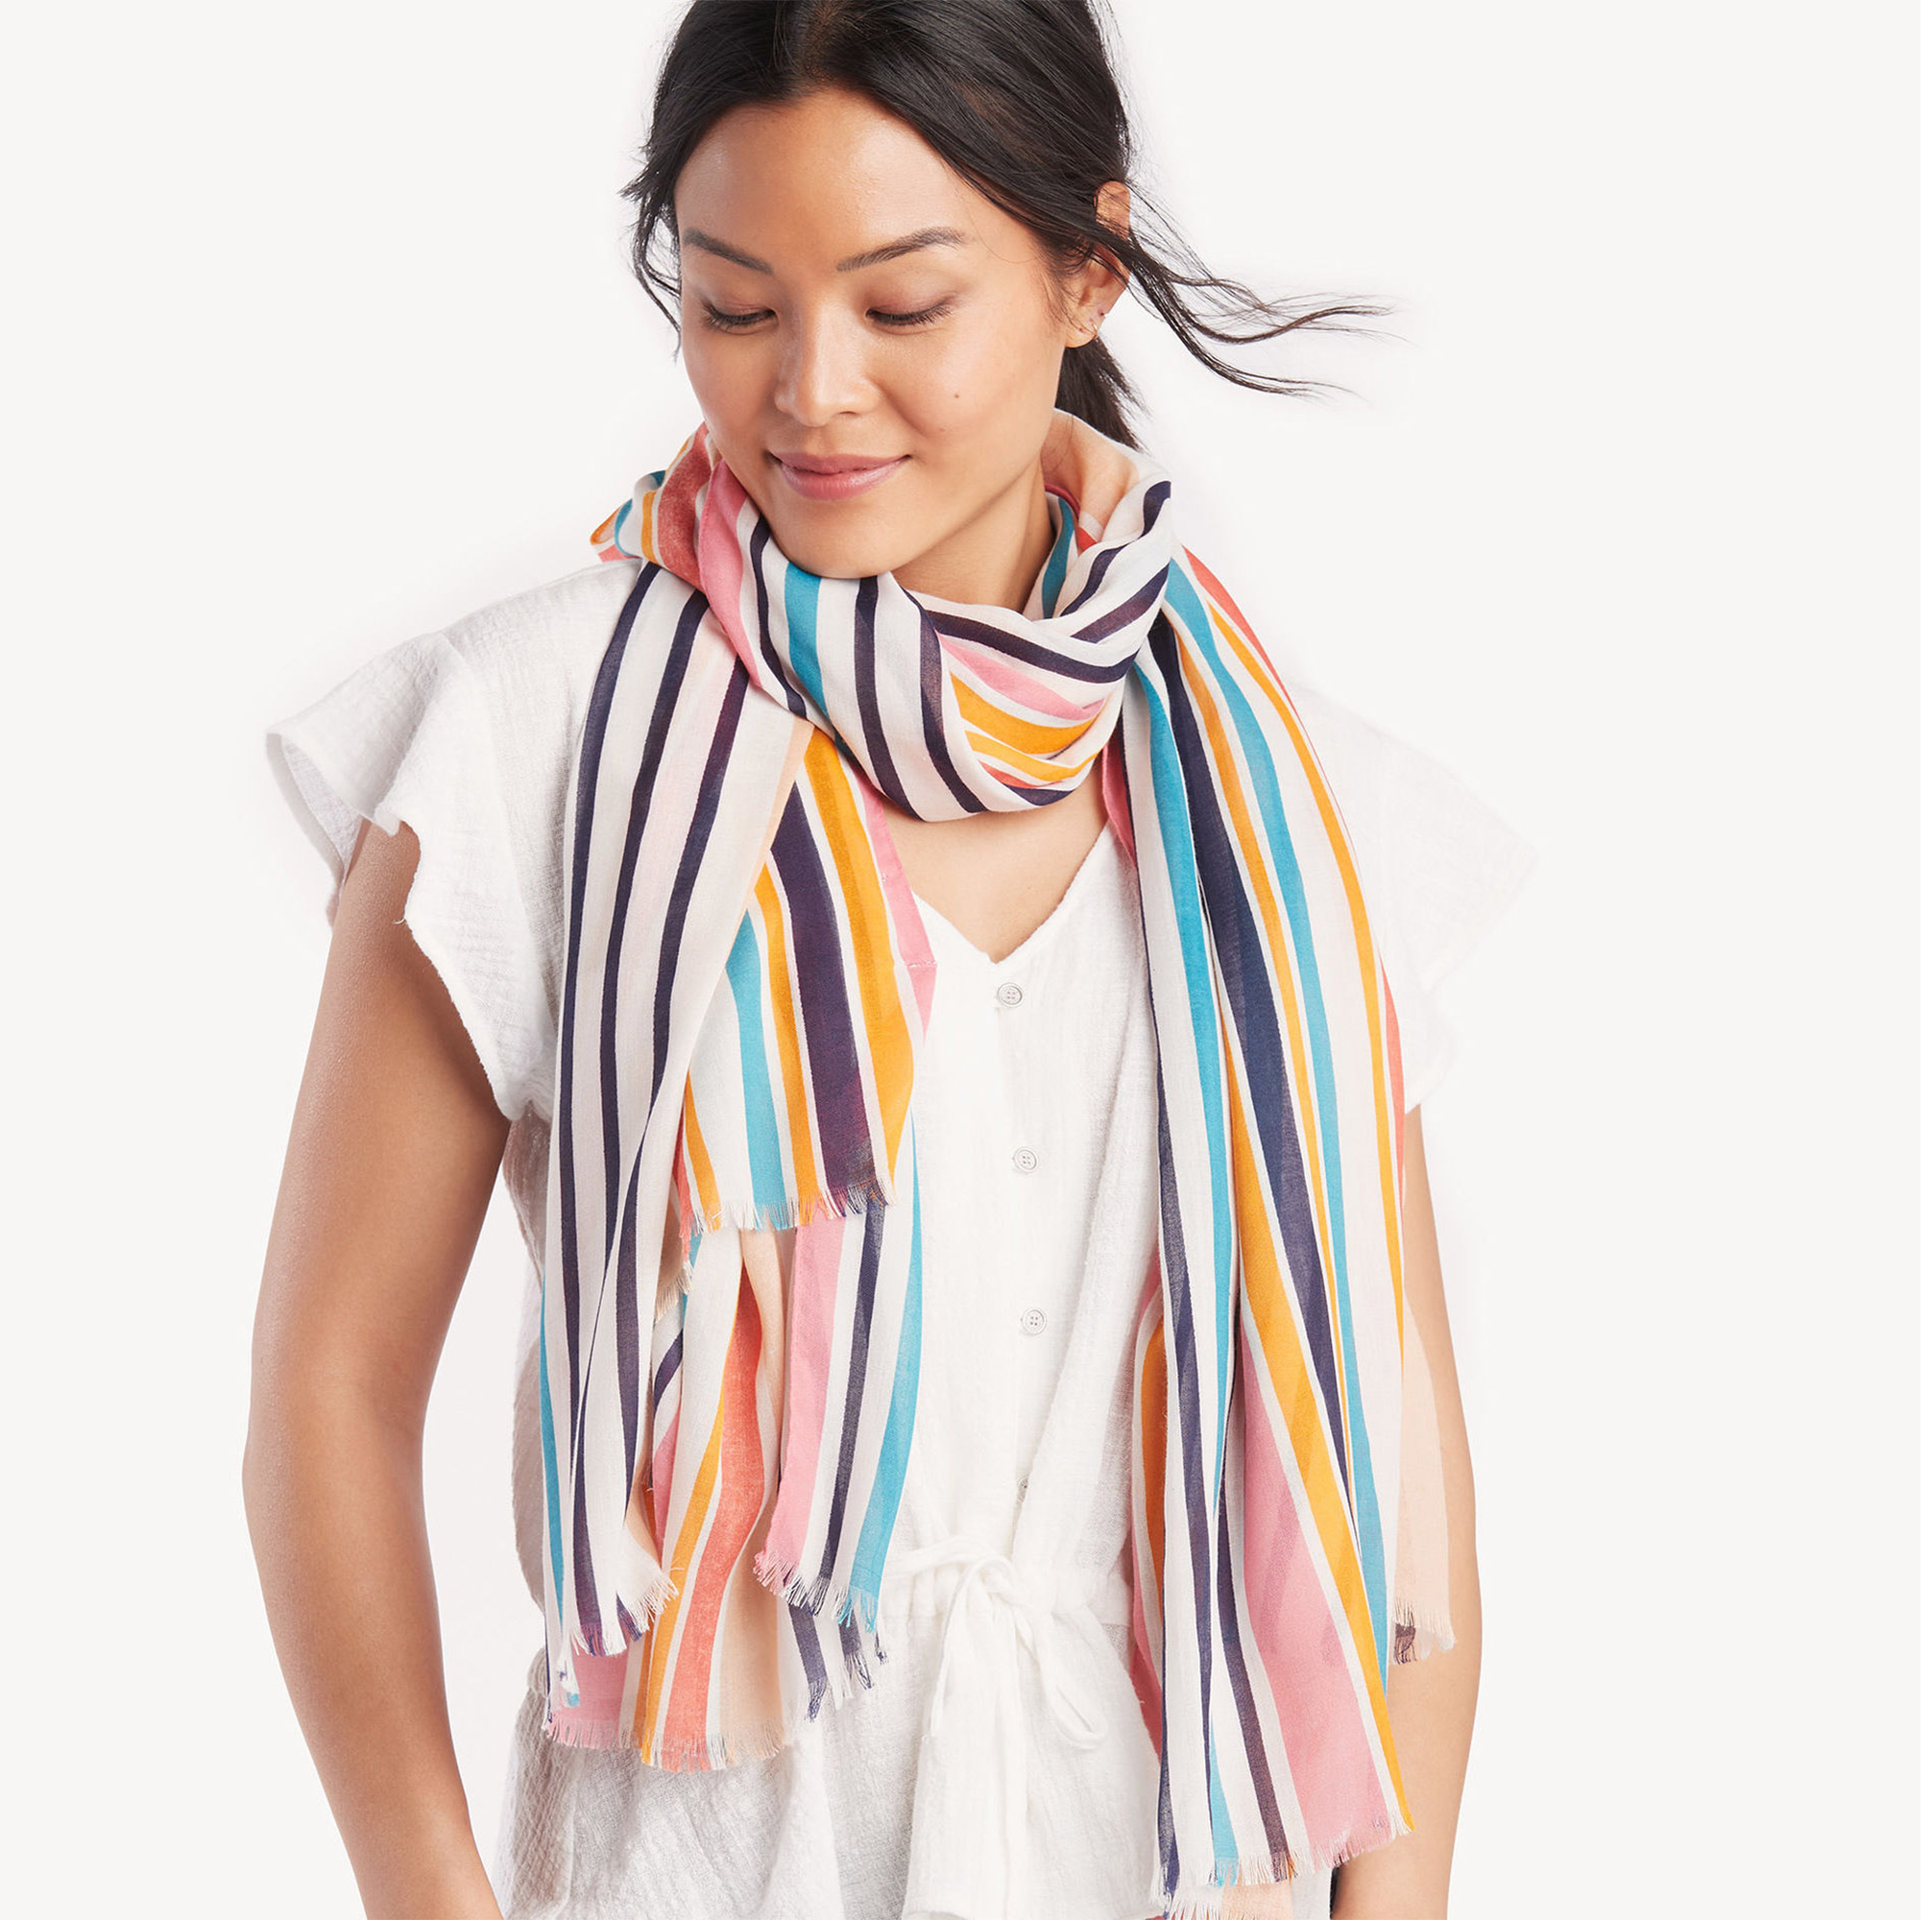 14 Stylish Summer Scarves and How to Wear Them With Anything